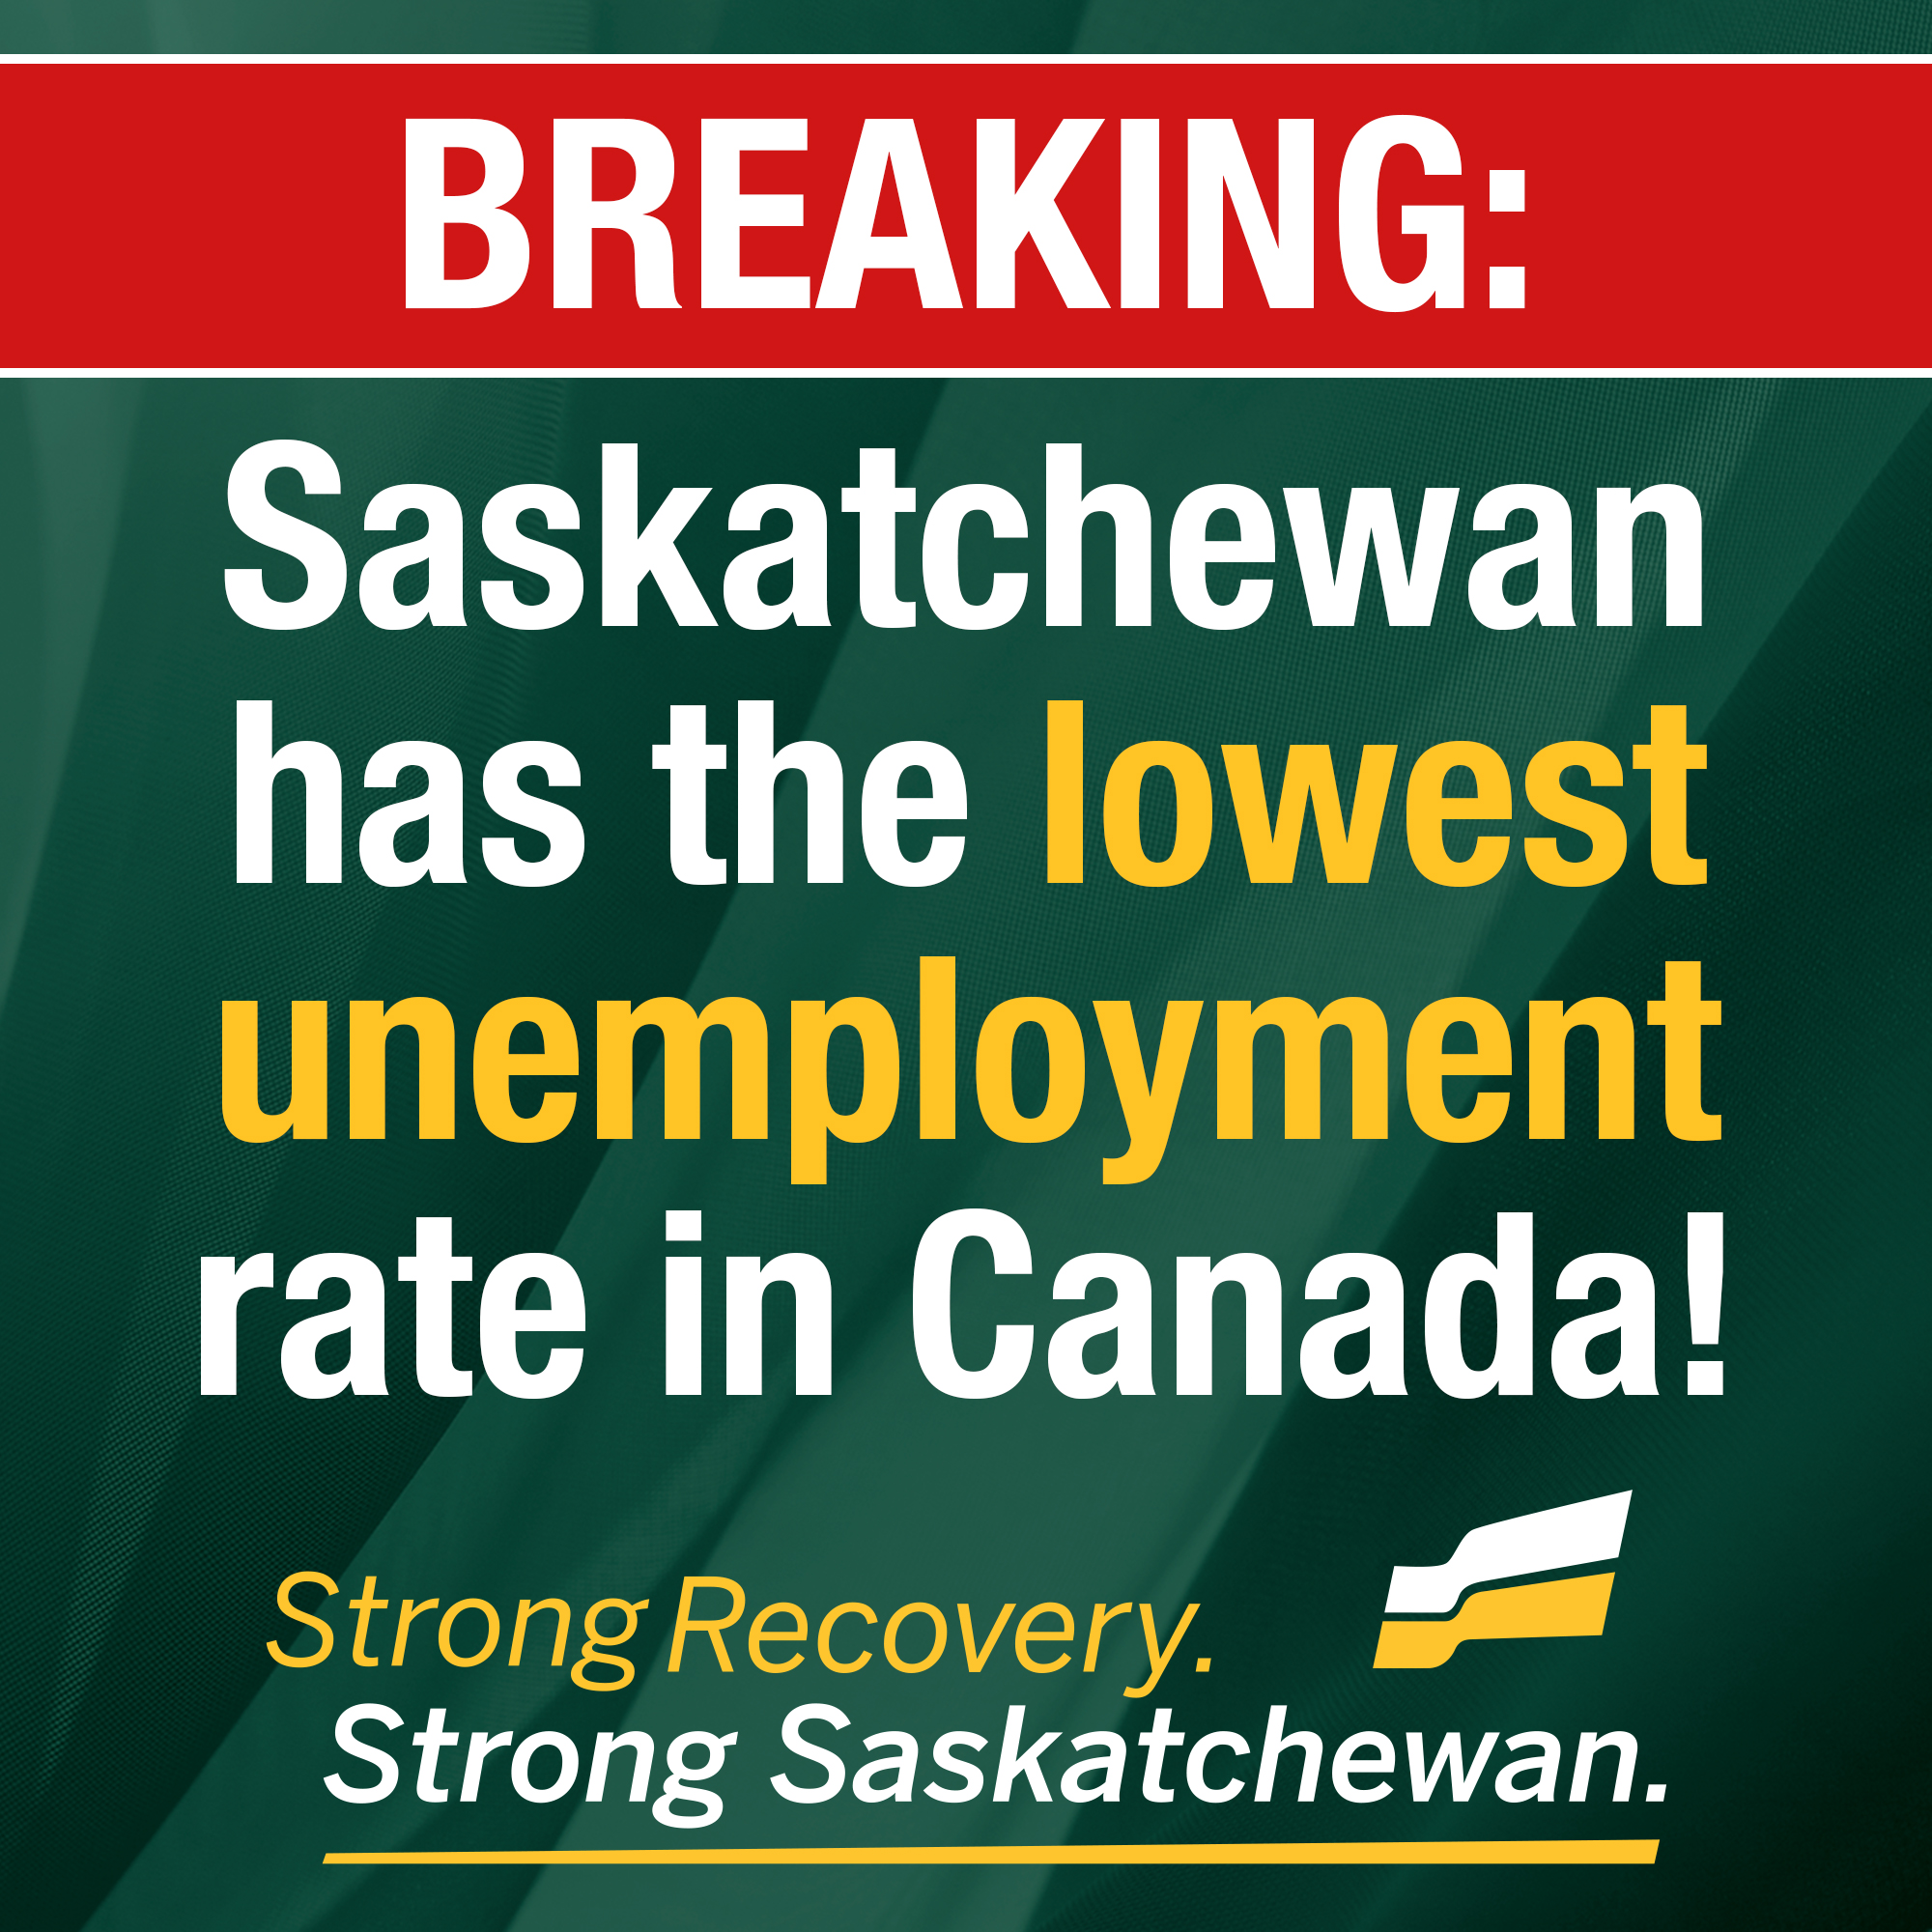 Strong Recovery, Strong Saskatchewan: 8700 New Jobs and the Lowest Unemployment Rate in Canada